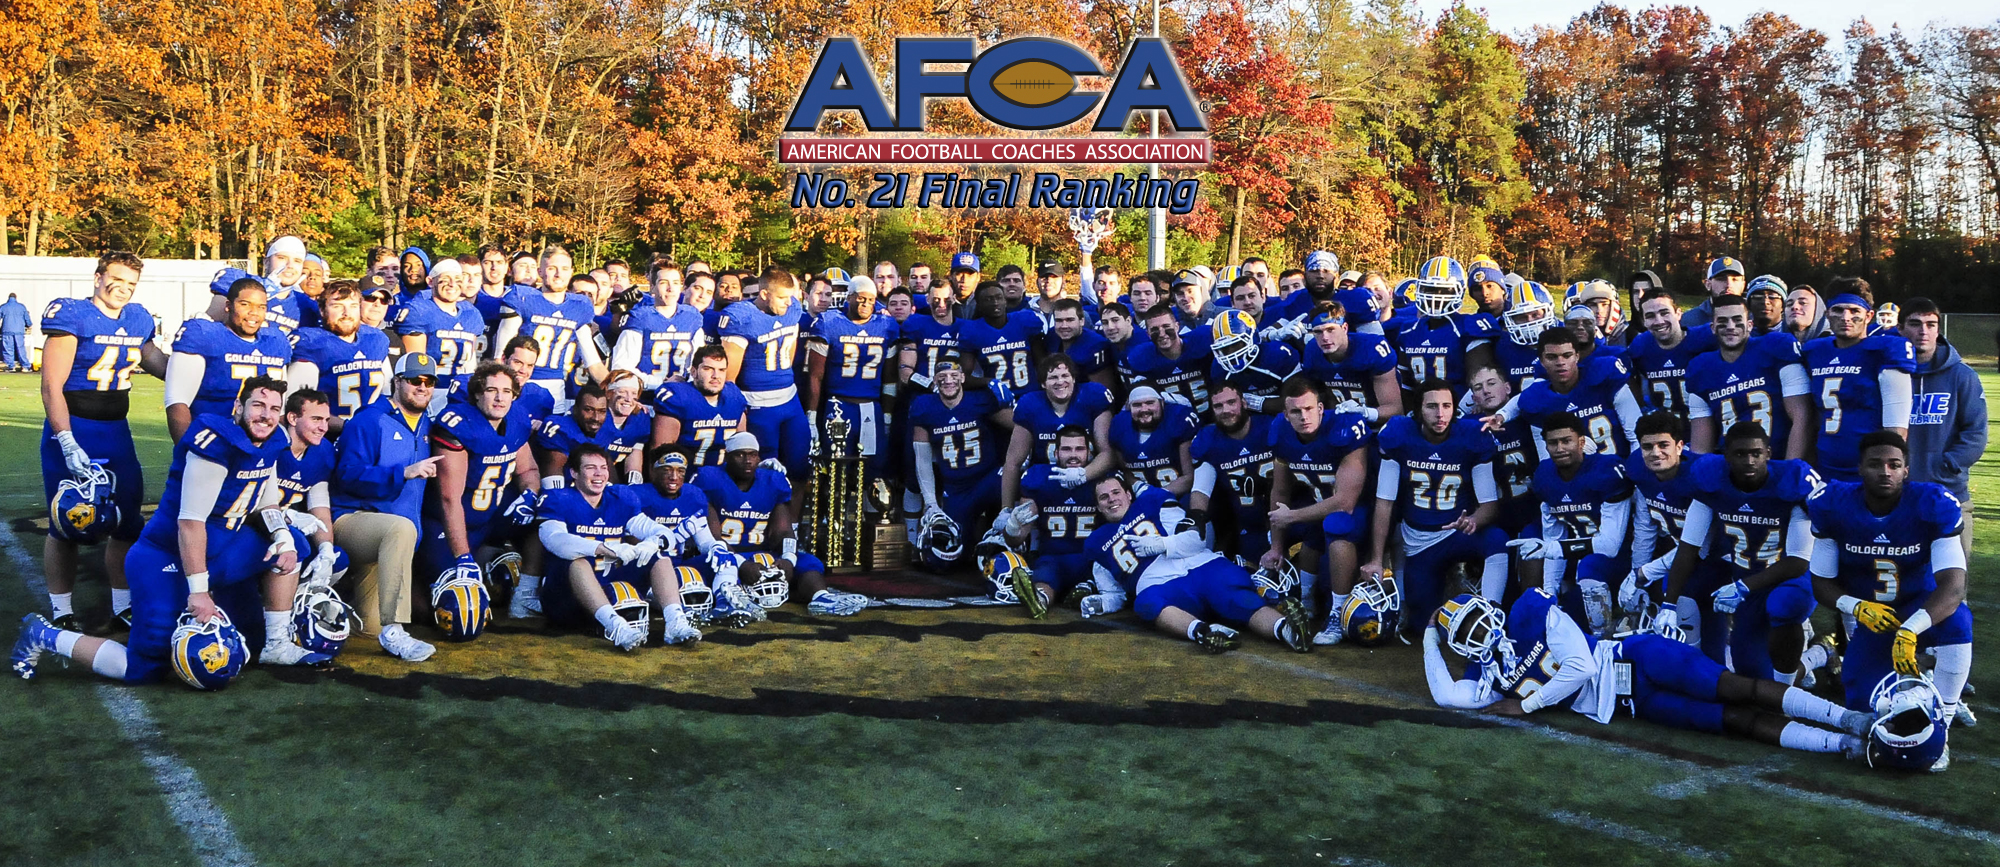 Golden Bears Ranked No. 21 in Final AFCA Poll